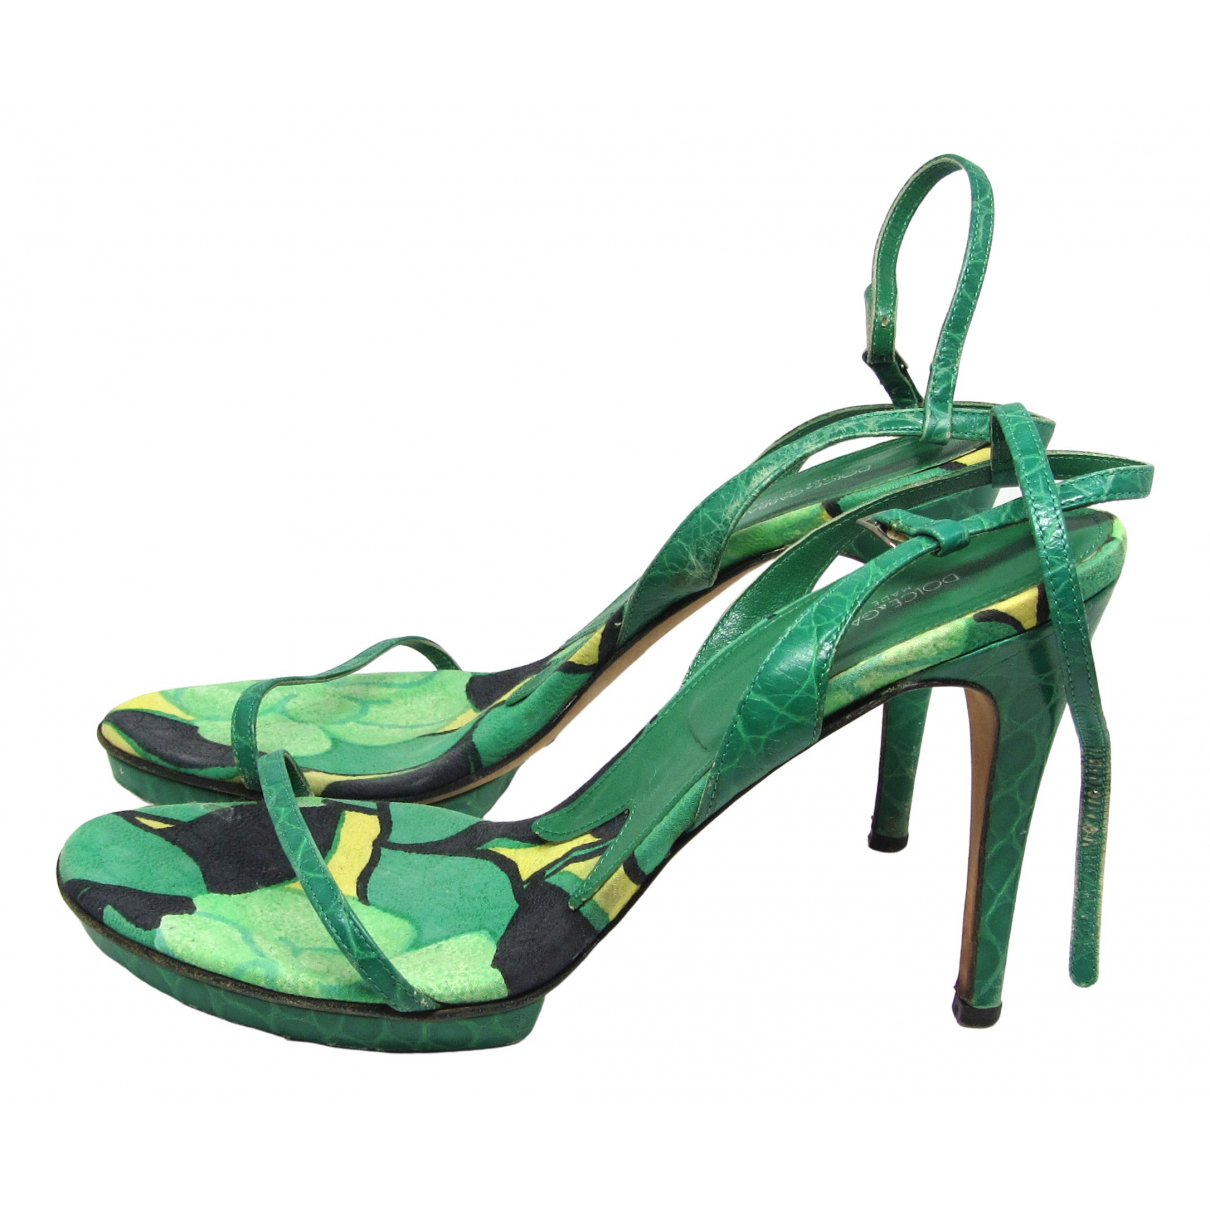 Dolce & Gabbana \N Green Leather Heels for Women 40 EU